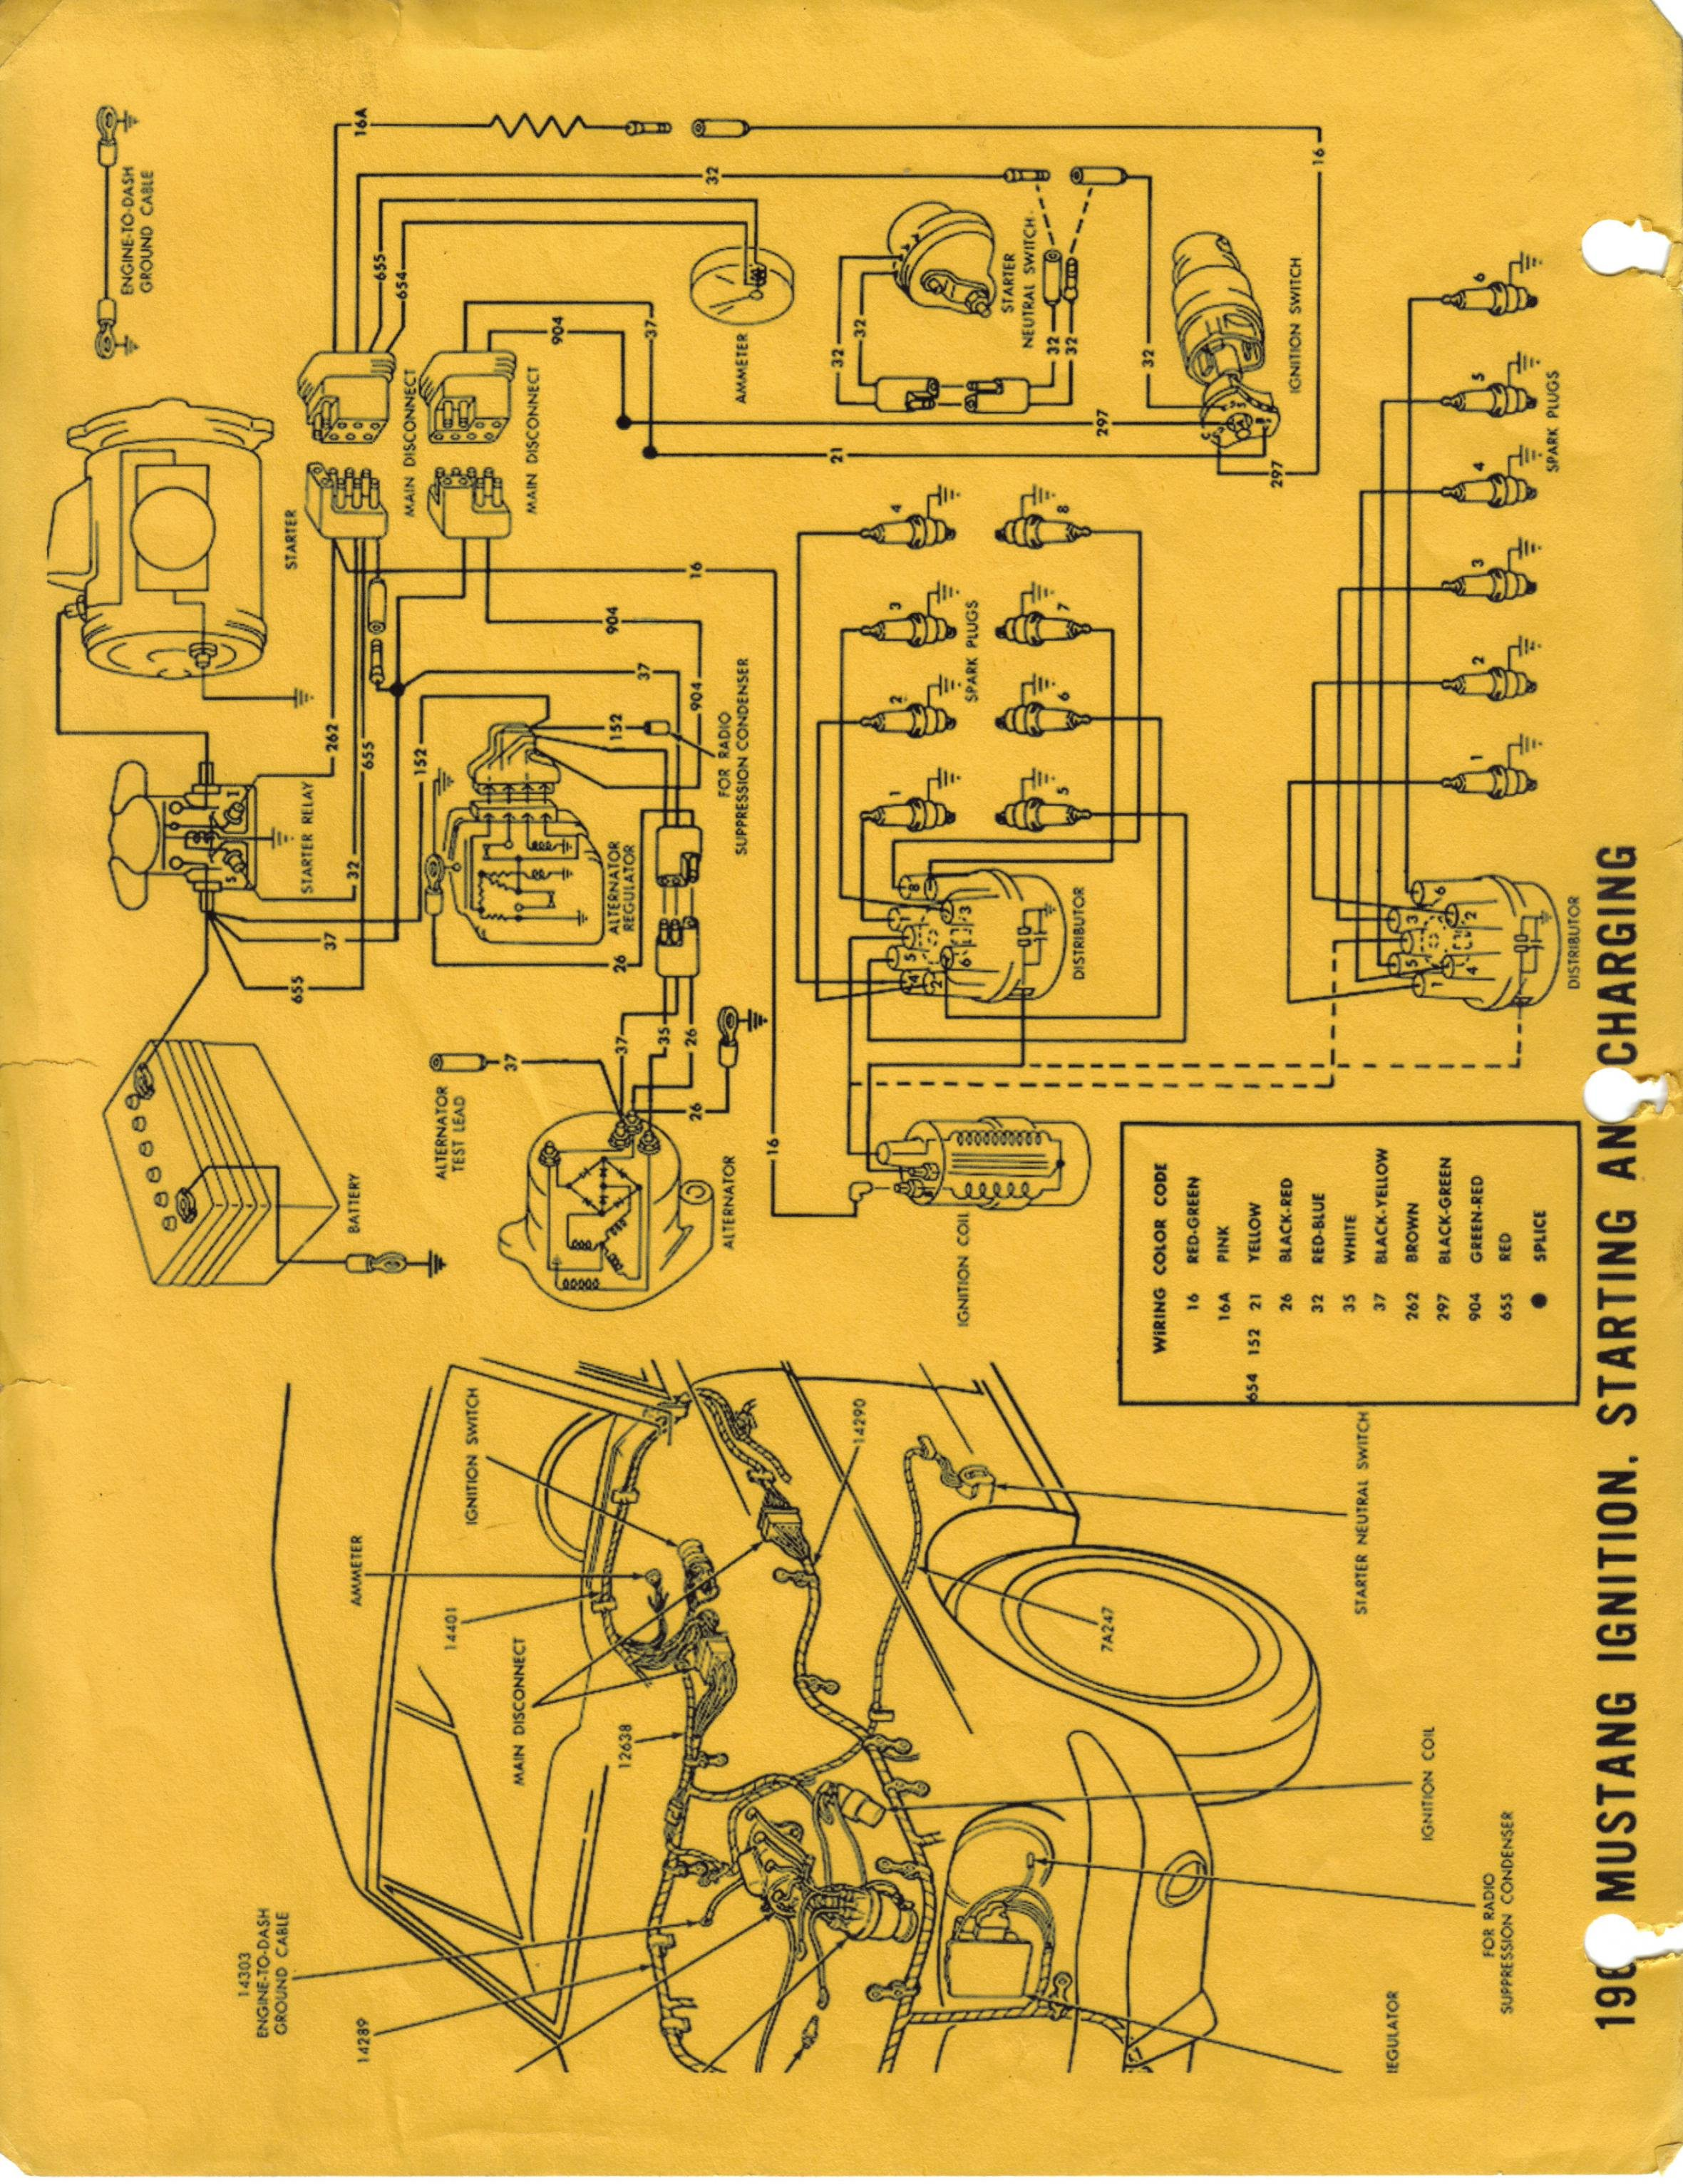 1964 1965 Wiring Diagram Manual Ford Mustang Forum Rolls Royce Diagrams Schematic Click Image For Larger Version Name Page 12 Views 1068 Size